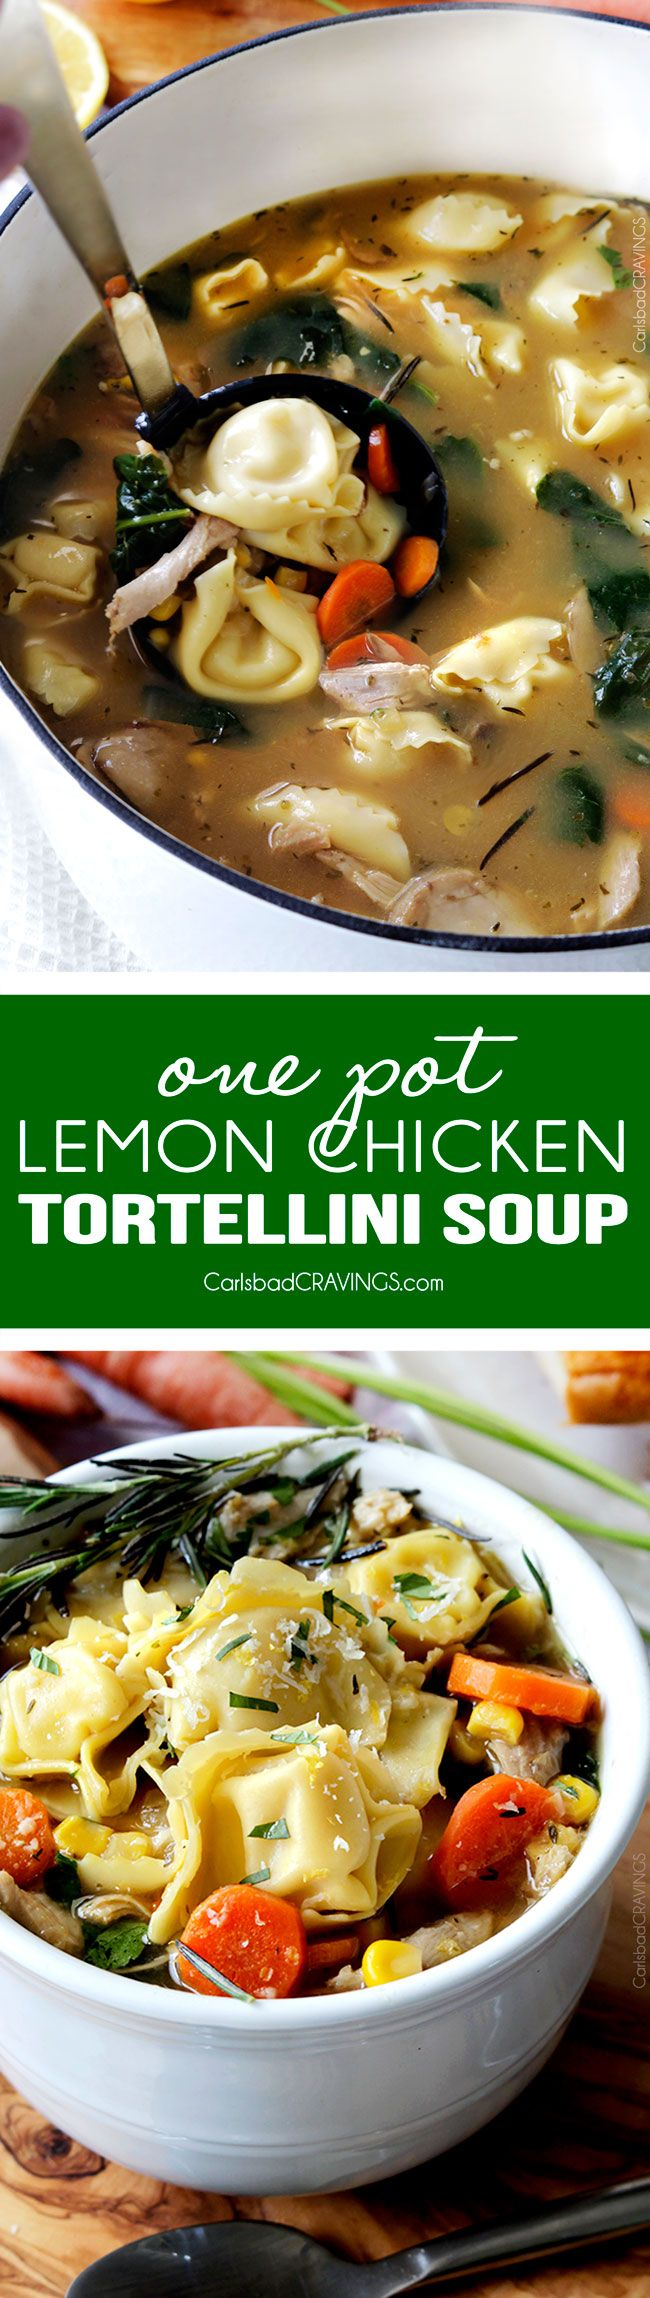 30 Minute, One Pot Lemon Chicken Tortellini Soup bursting with pillows of cheesy tortellini, tender chicken, and vegetables kissed with bright, refreshing lemon juice.  the best lemon soup and SO easy!!  via @carlsbadcraving